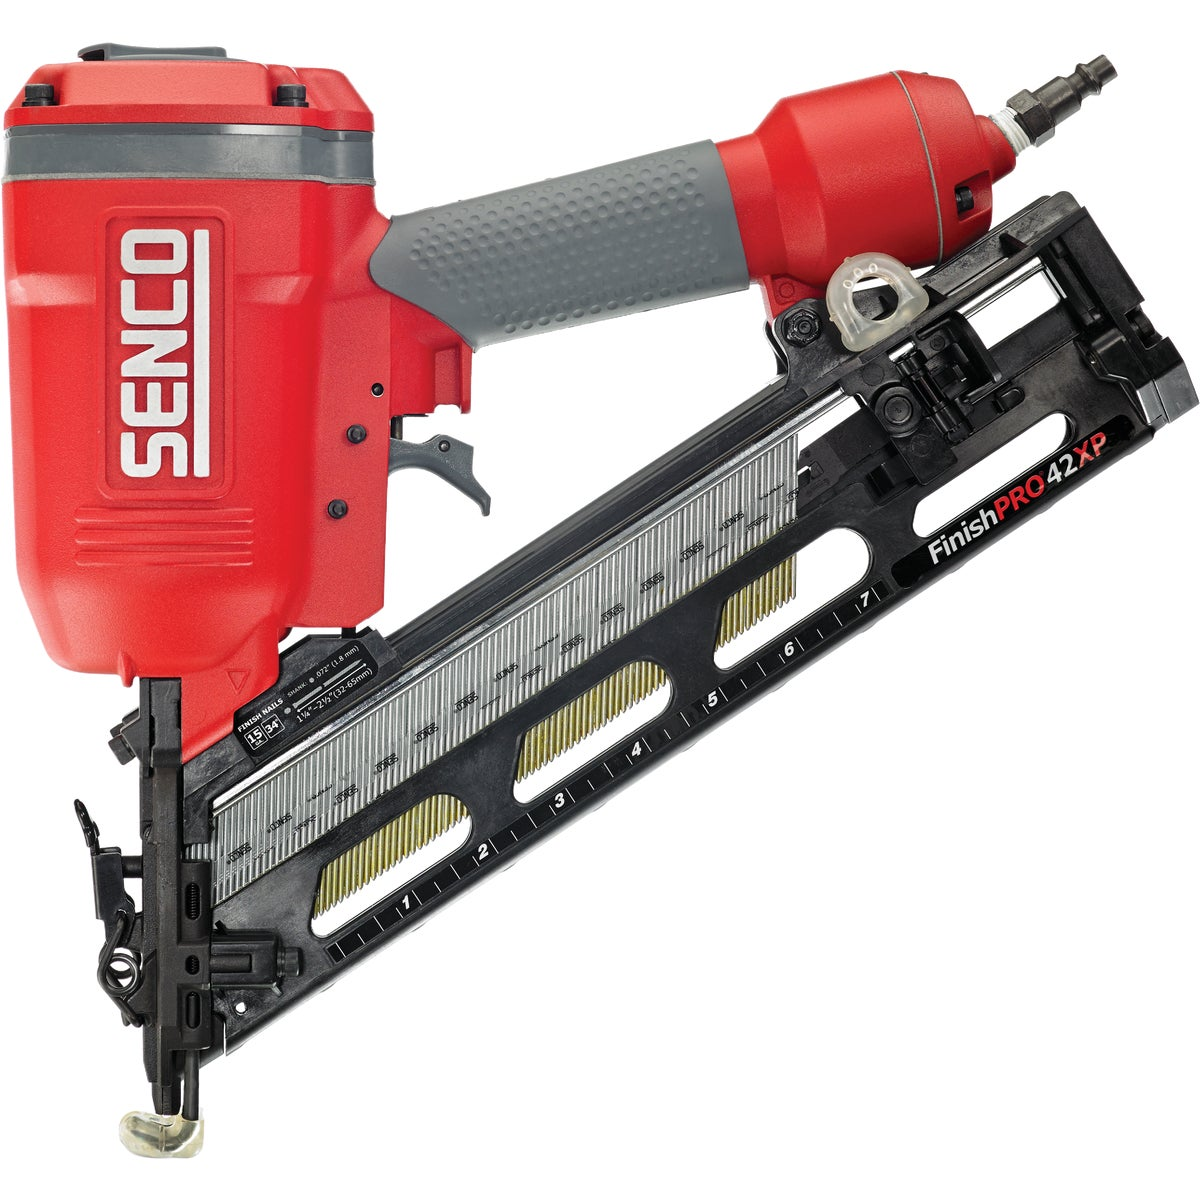 FINISHPRO 42XP NAILER